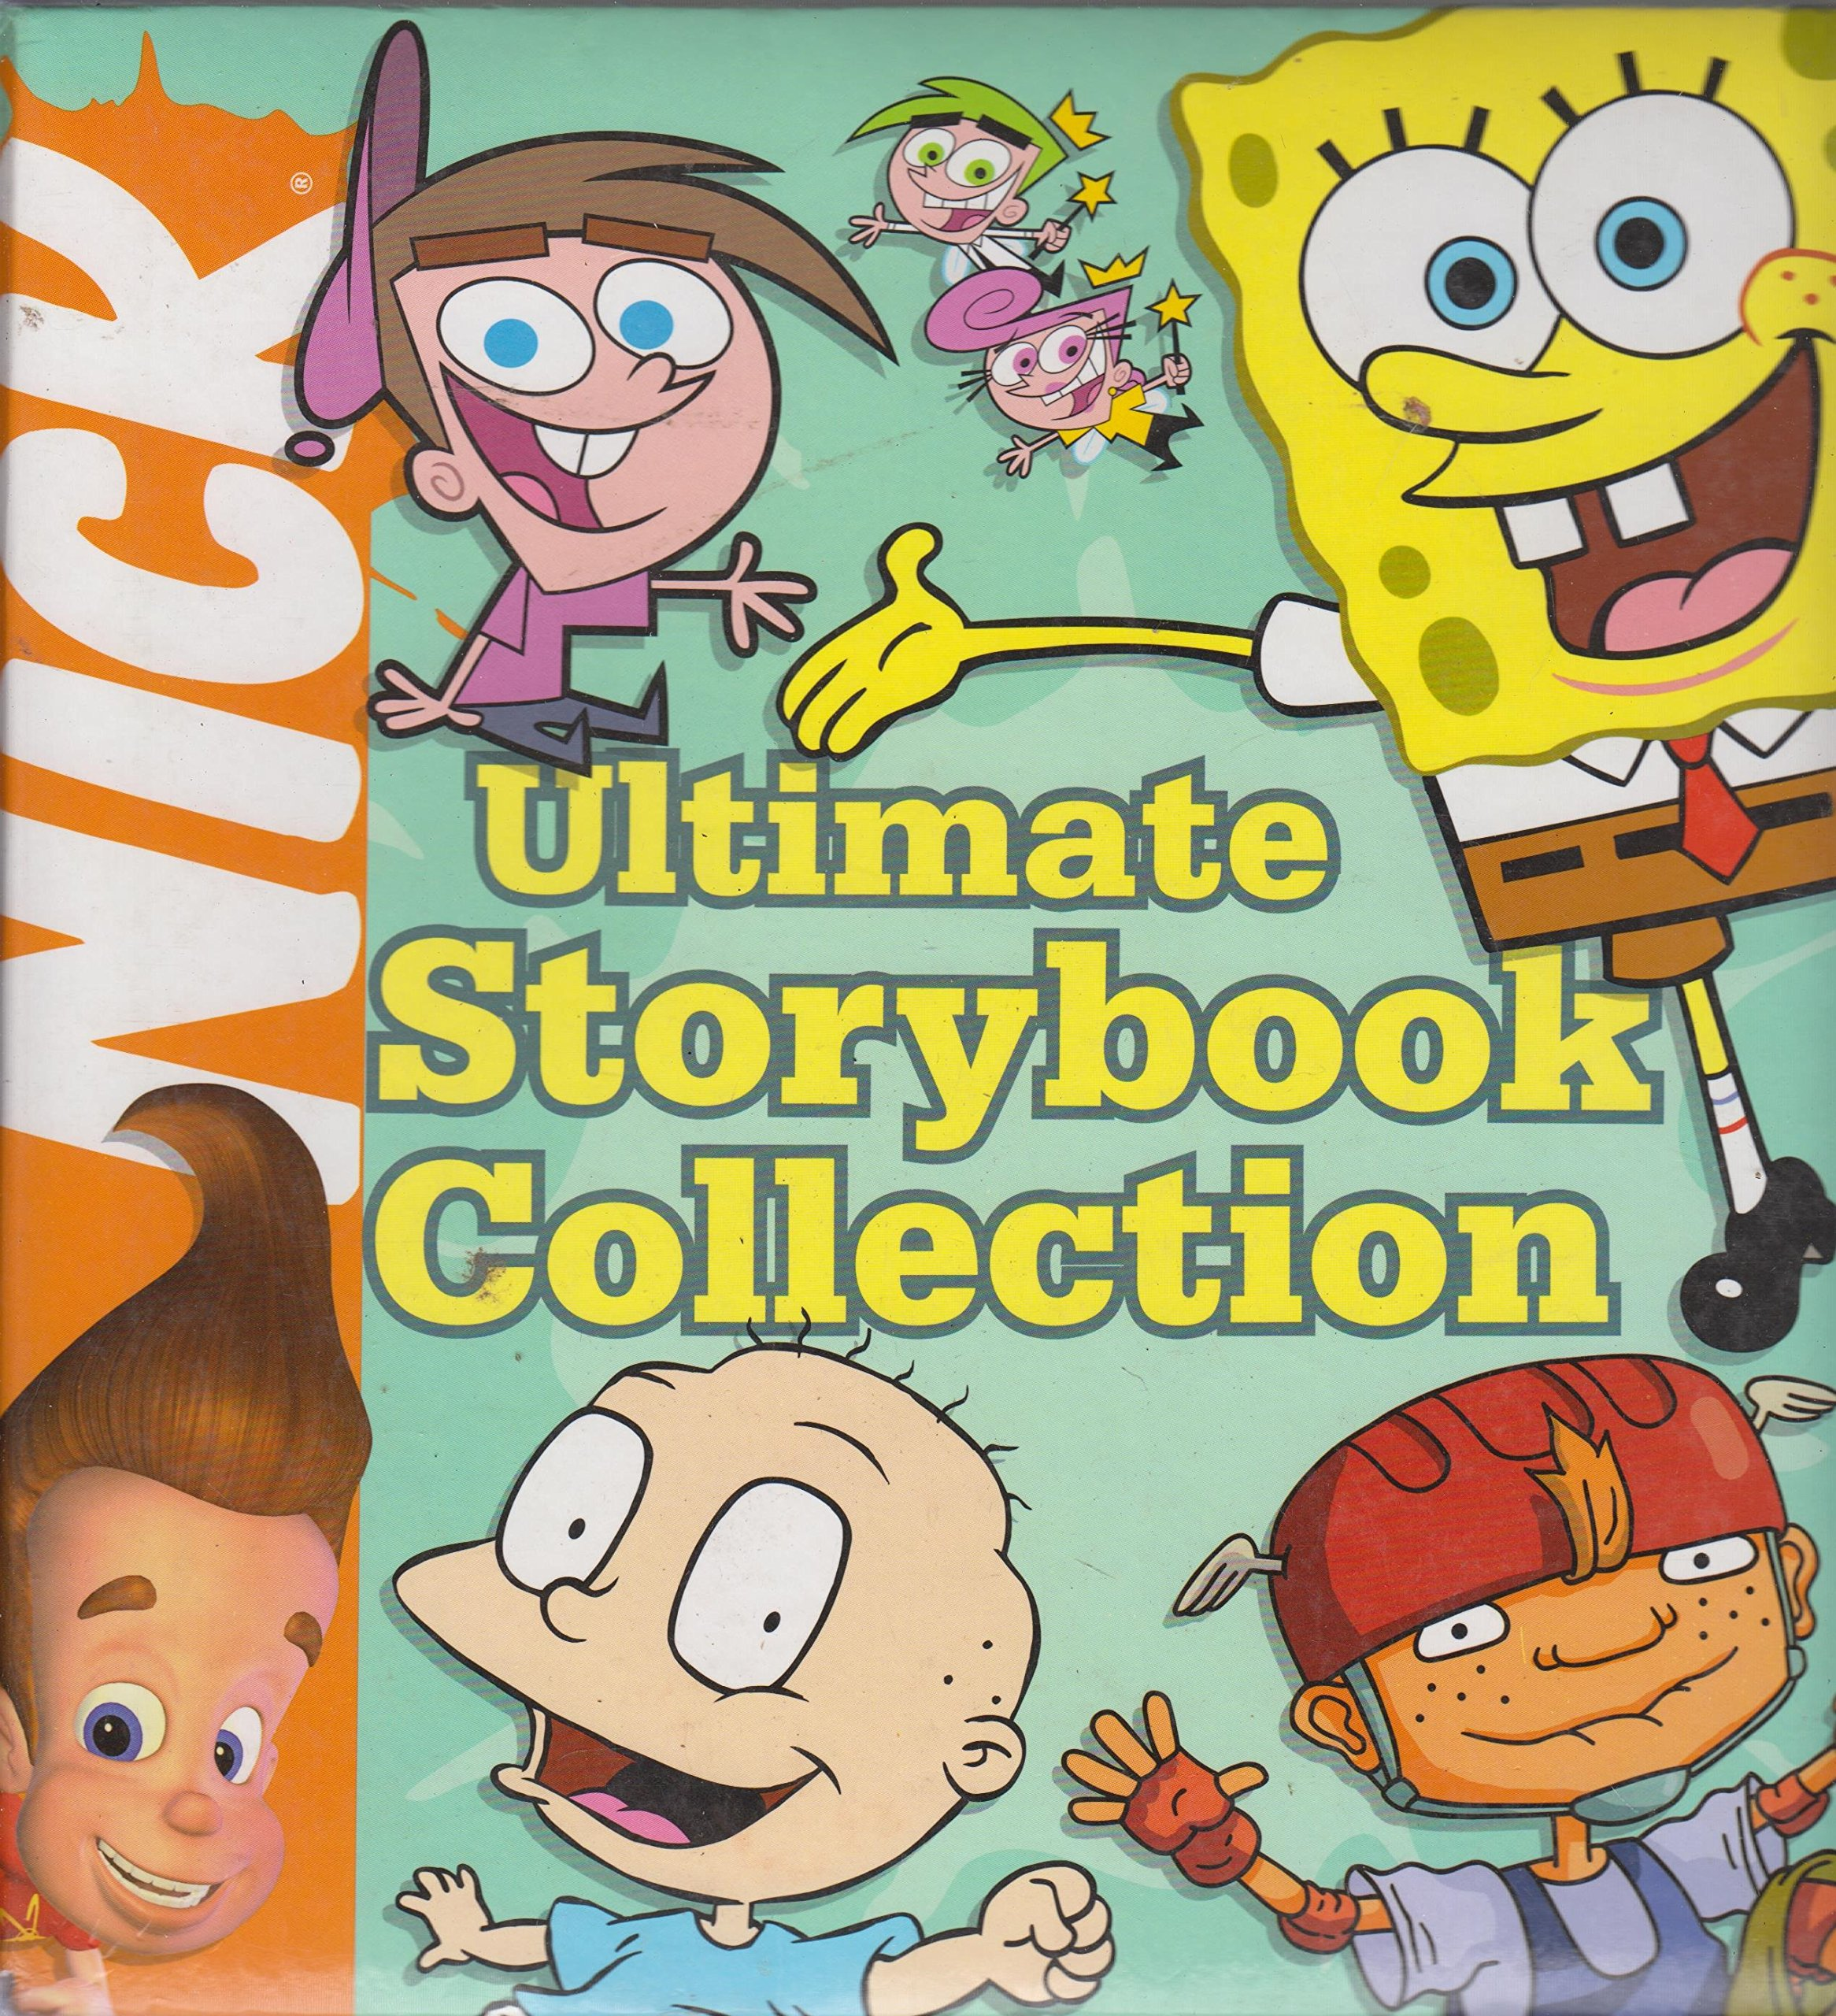 Ultimate Storybook Collection Spongebob Squarepants Rugrats